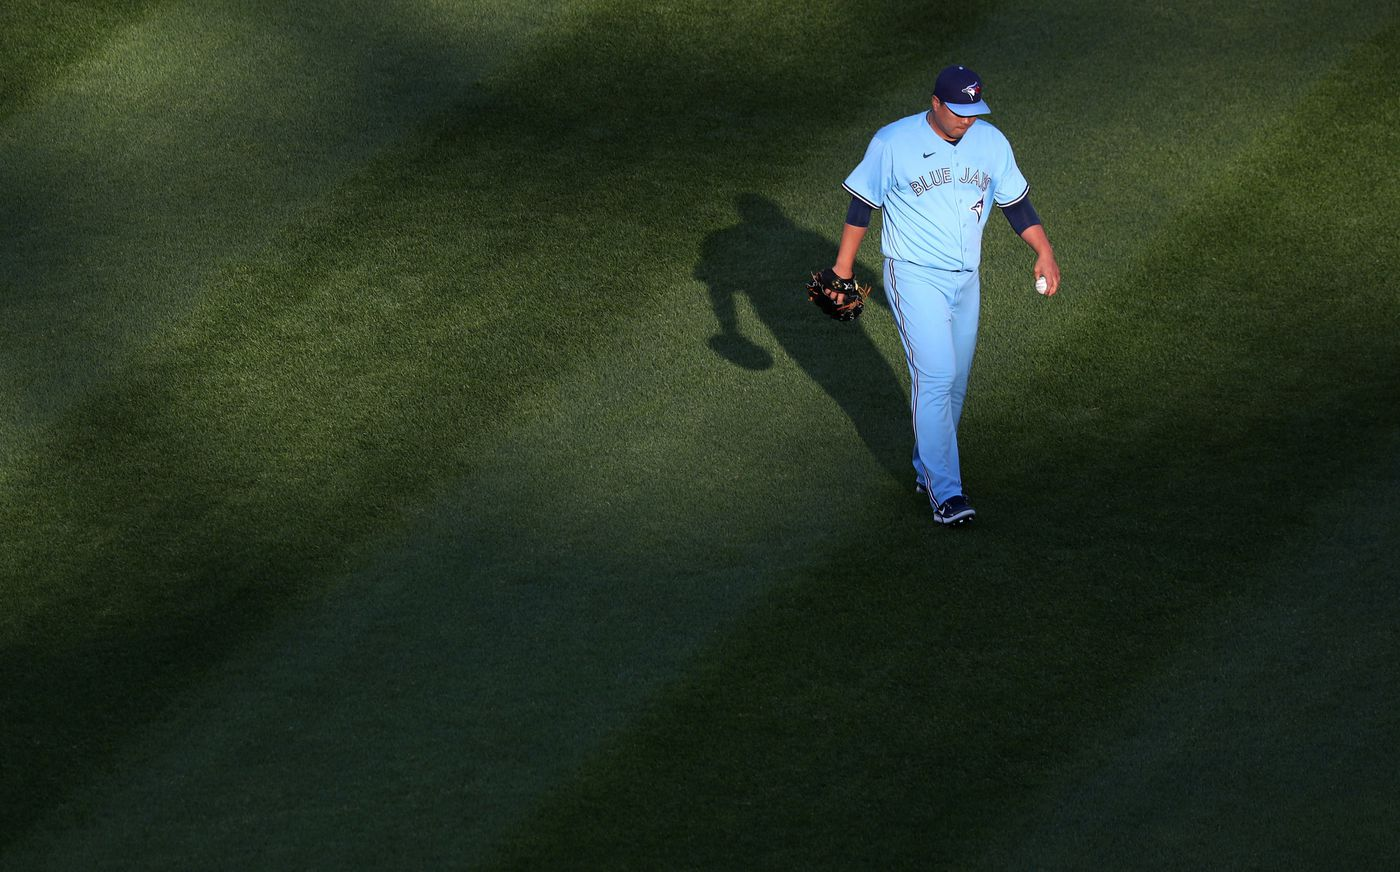 Blue Jays starting pitcher Hyun Jin Ryu warms up in the outfield before facing the White Sox on June 10, 2021, at Guaranteed Rate Field.